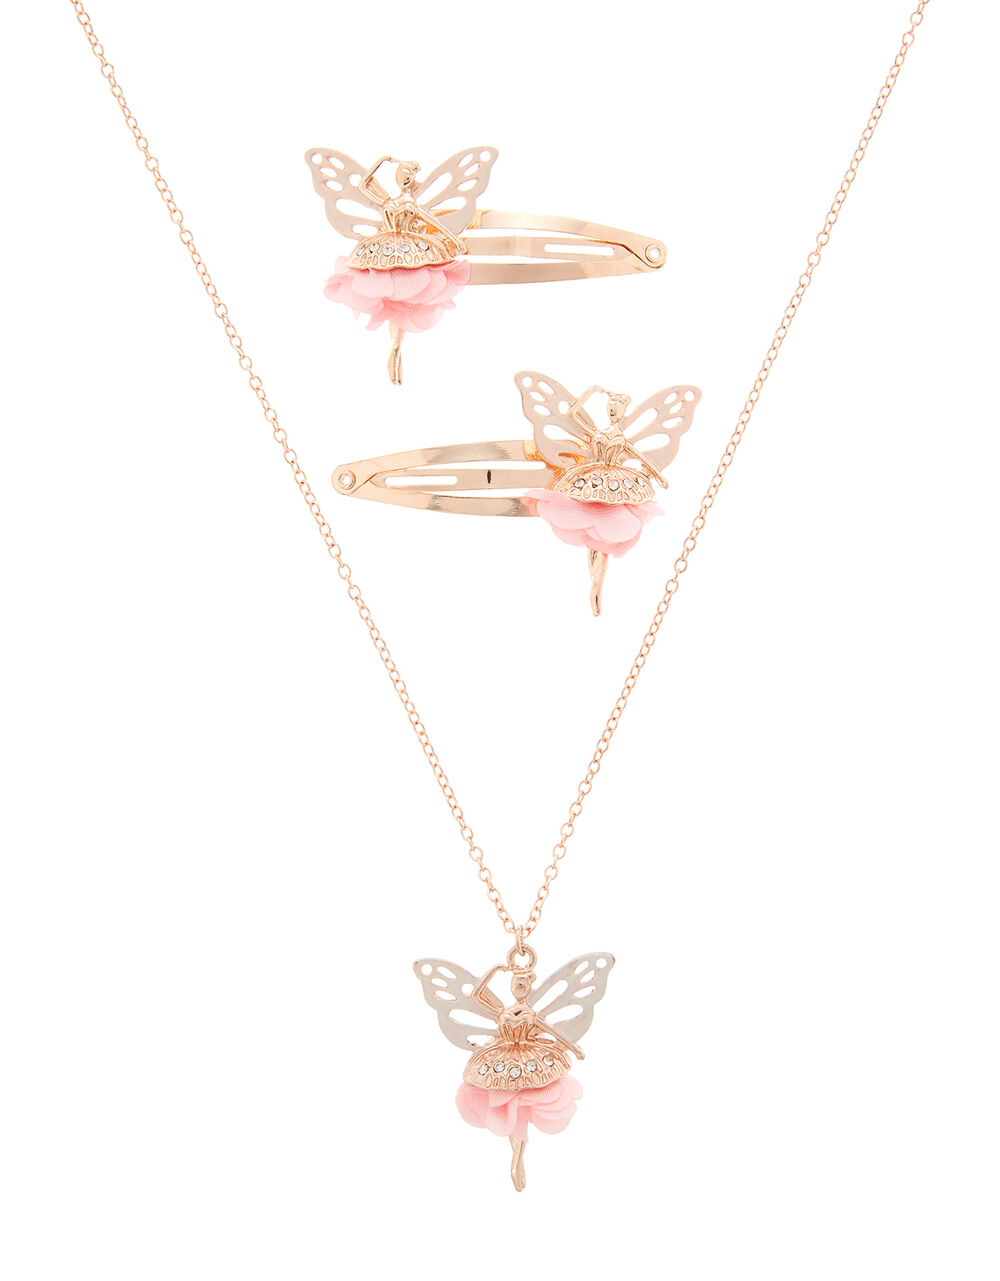 Ballerina Butterfly Necklace and Hair Clip Set, , large